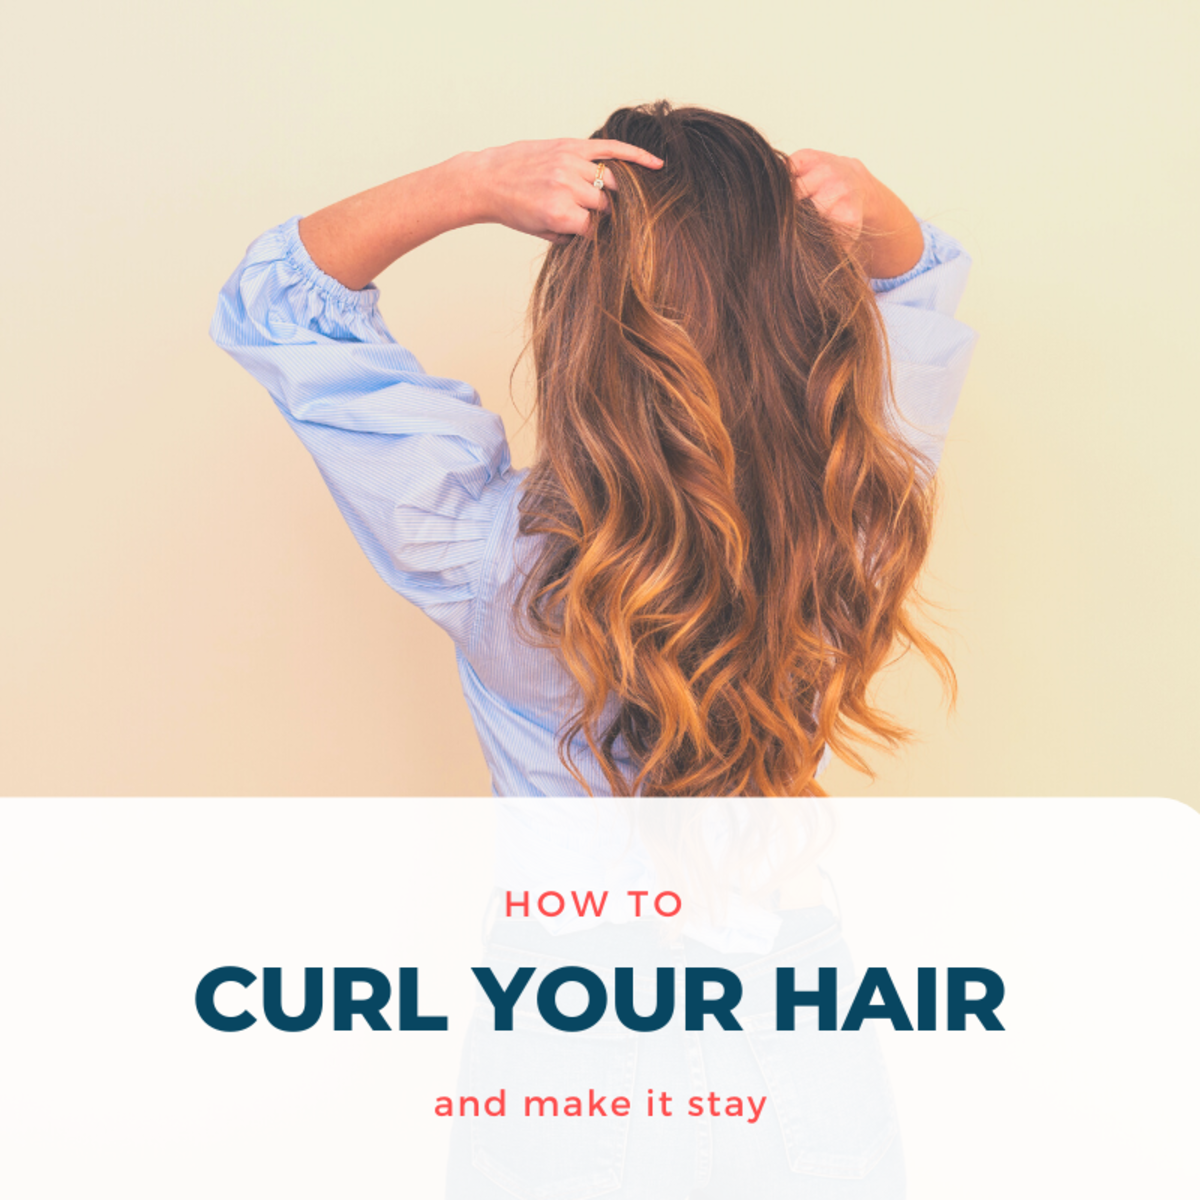 Hair Curling Tips and Tricks You Wish Your Mom Had Taught You